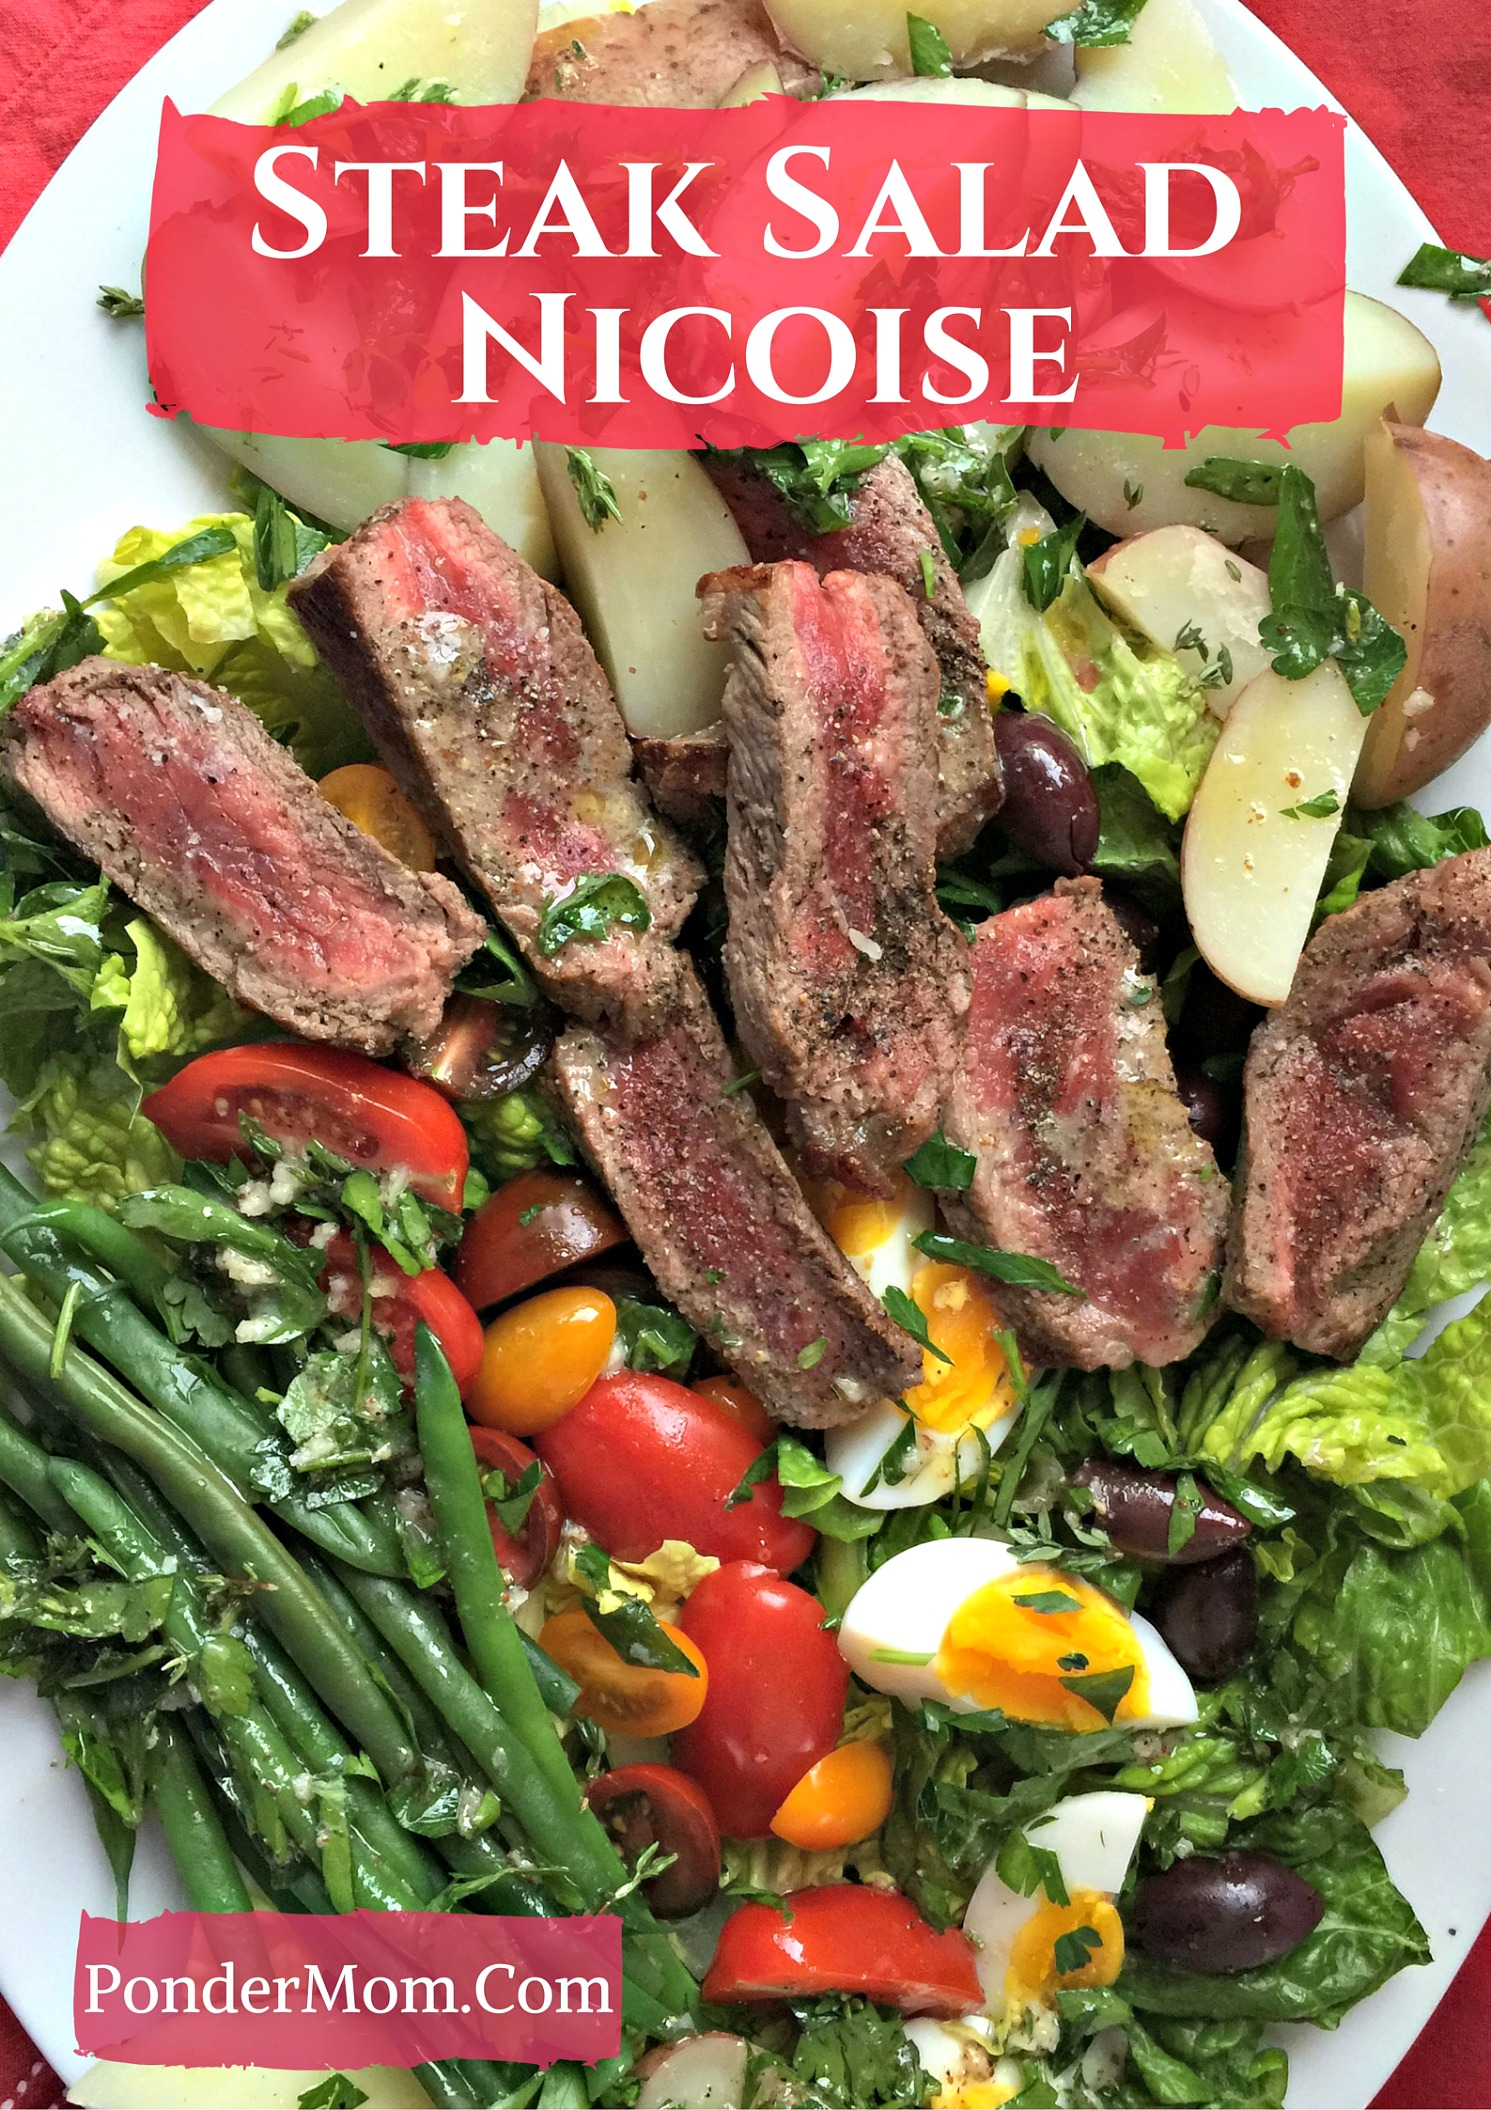 Healthy Meal #4: Steak Salad Nicoise – A Hearty Winter Lunch or Dinner . . . or Linner